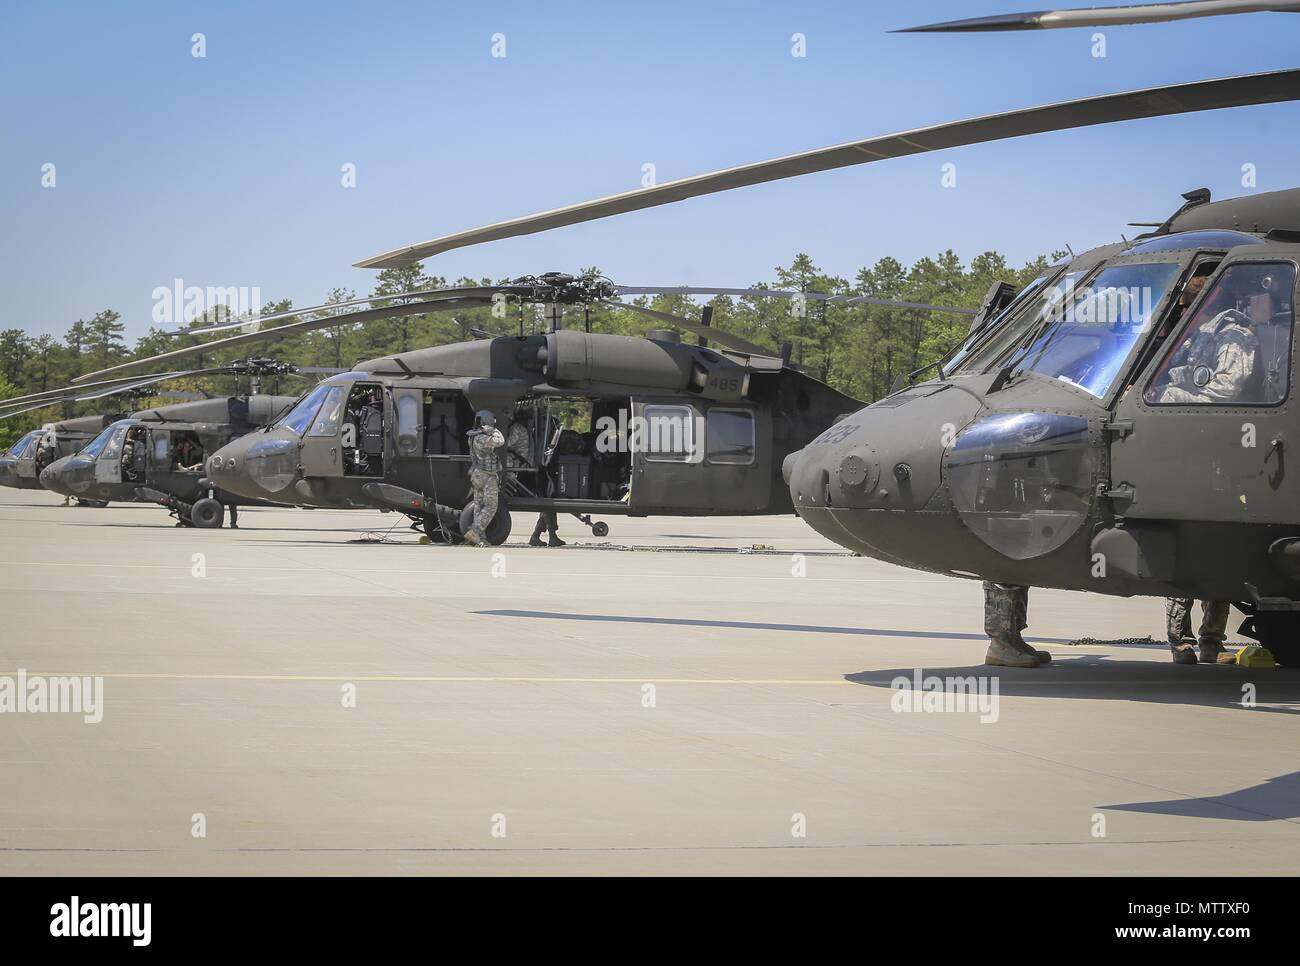 New Jersey Army National Guard Soldiers from the 1st Assault Helicopter Battalion, 150th Aviation Regiment prepare their UH-60L Black Hawk helicopters for a flight at Joint Base McGuire-Dix-Lakehurst, N.J. May 15, 2018, May 15, 2018. (U.S. Air National Guard photo by Master Sgt. Matt Hecht). () - Stock Image